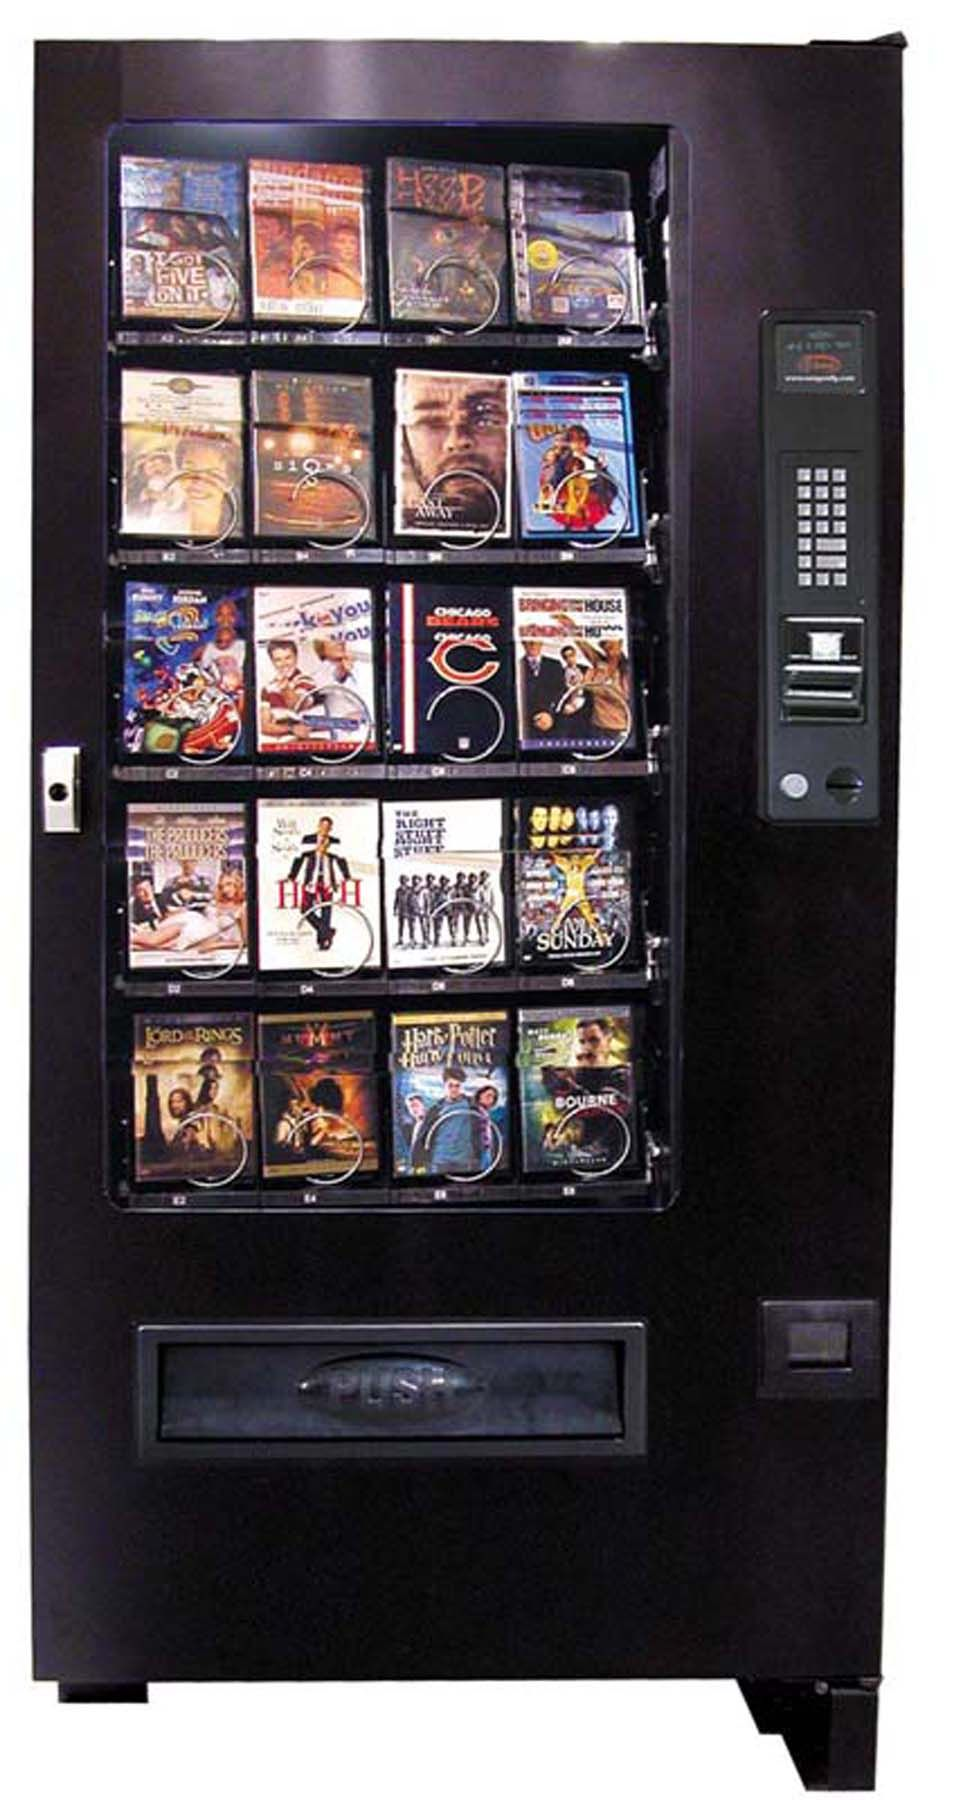 Premium Collection Dvd Vending Machine Give Customers Their